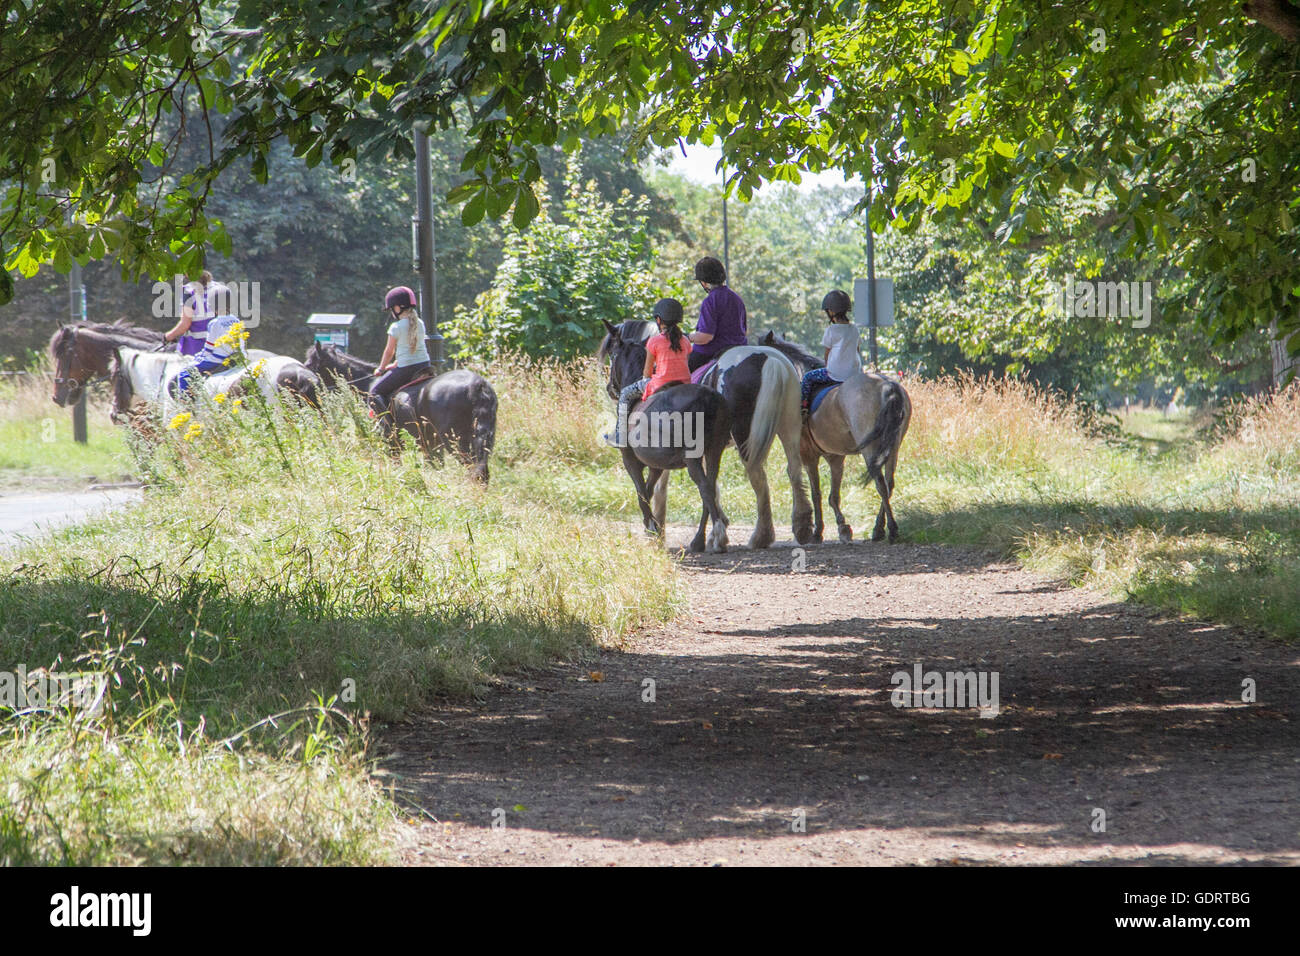 London, UK. 20th July 2016. A group of horse riders  form a local riding school on Wimbledon Common on hot day  Stock Photo